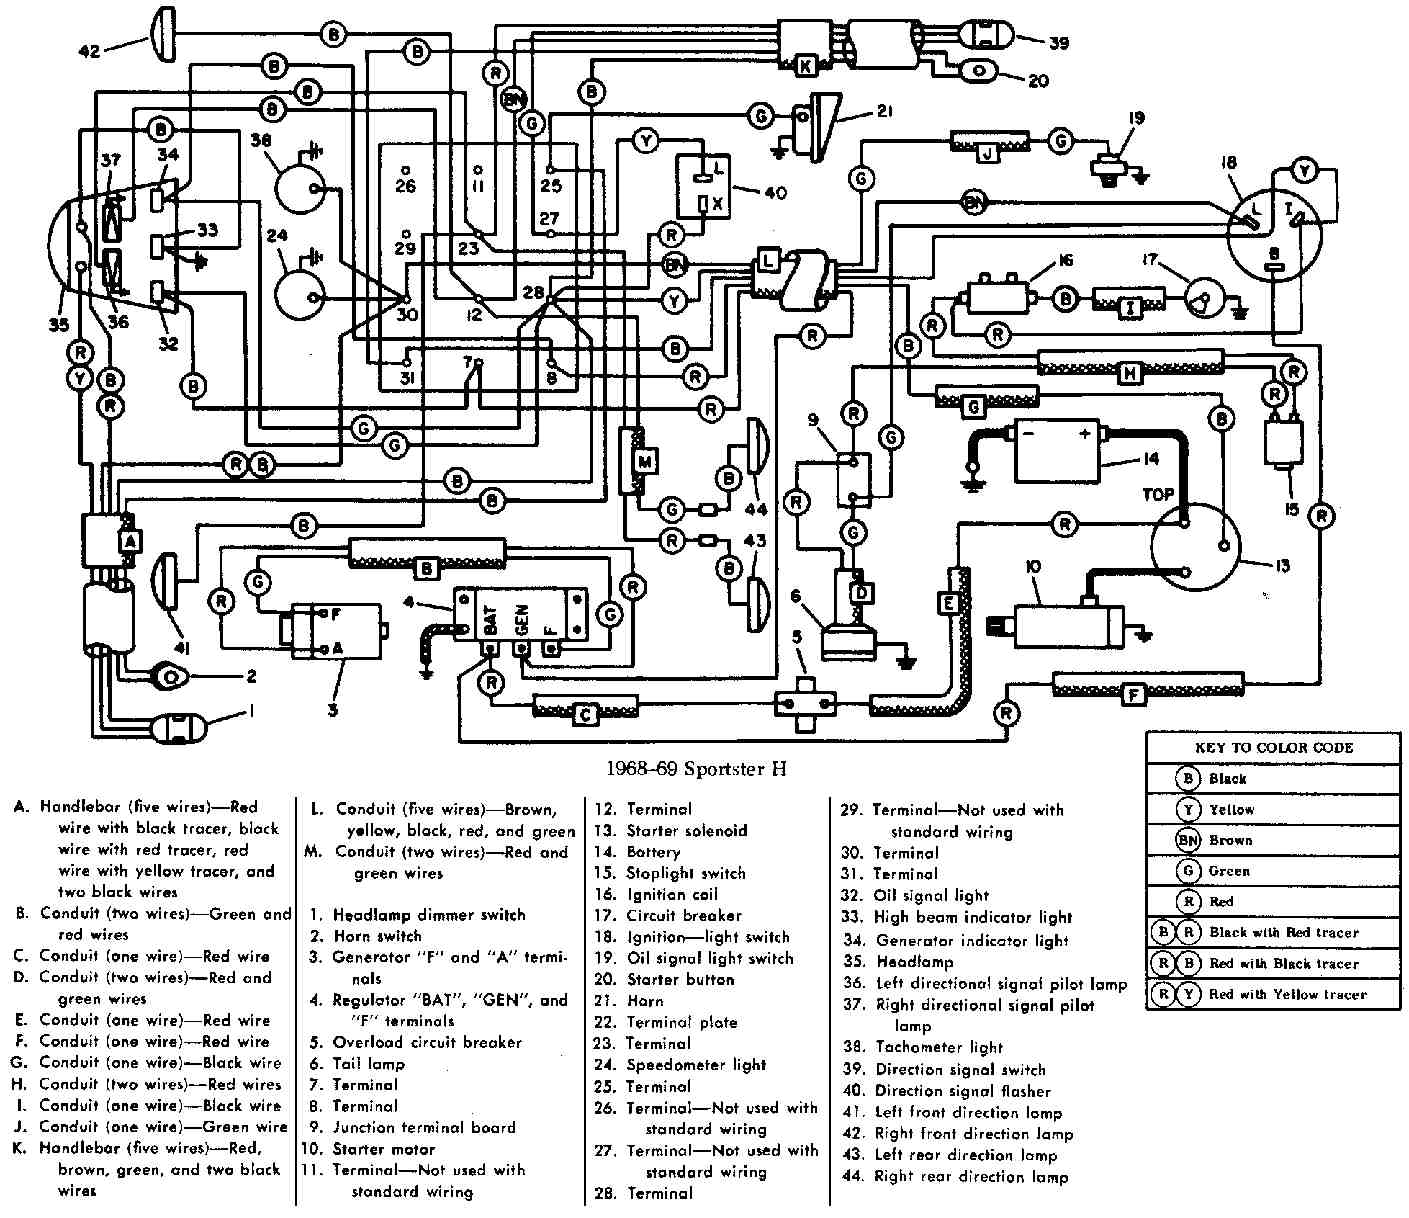 2008 Harley Sportster Fuse Box Trusted Wiring Diagram Accessory Motorcycle Diagrams Schematics Accessories